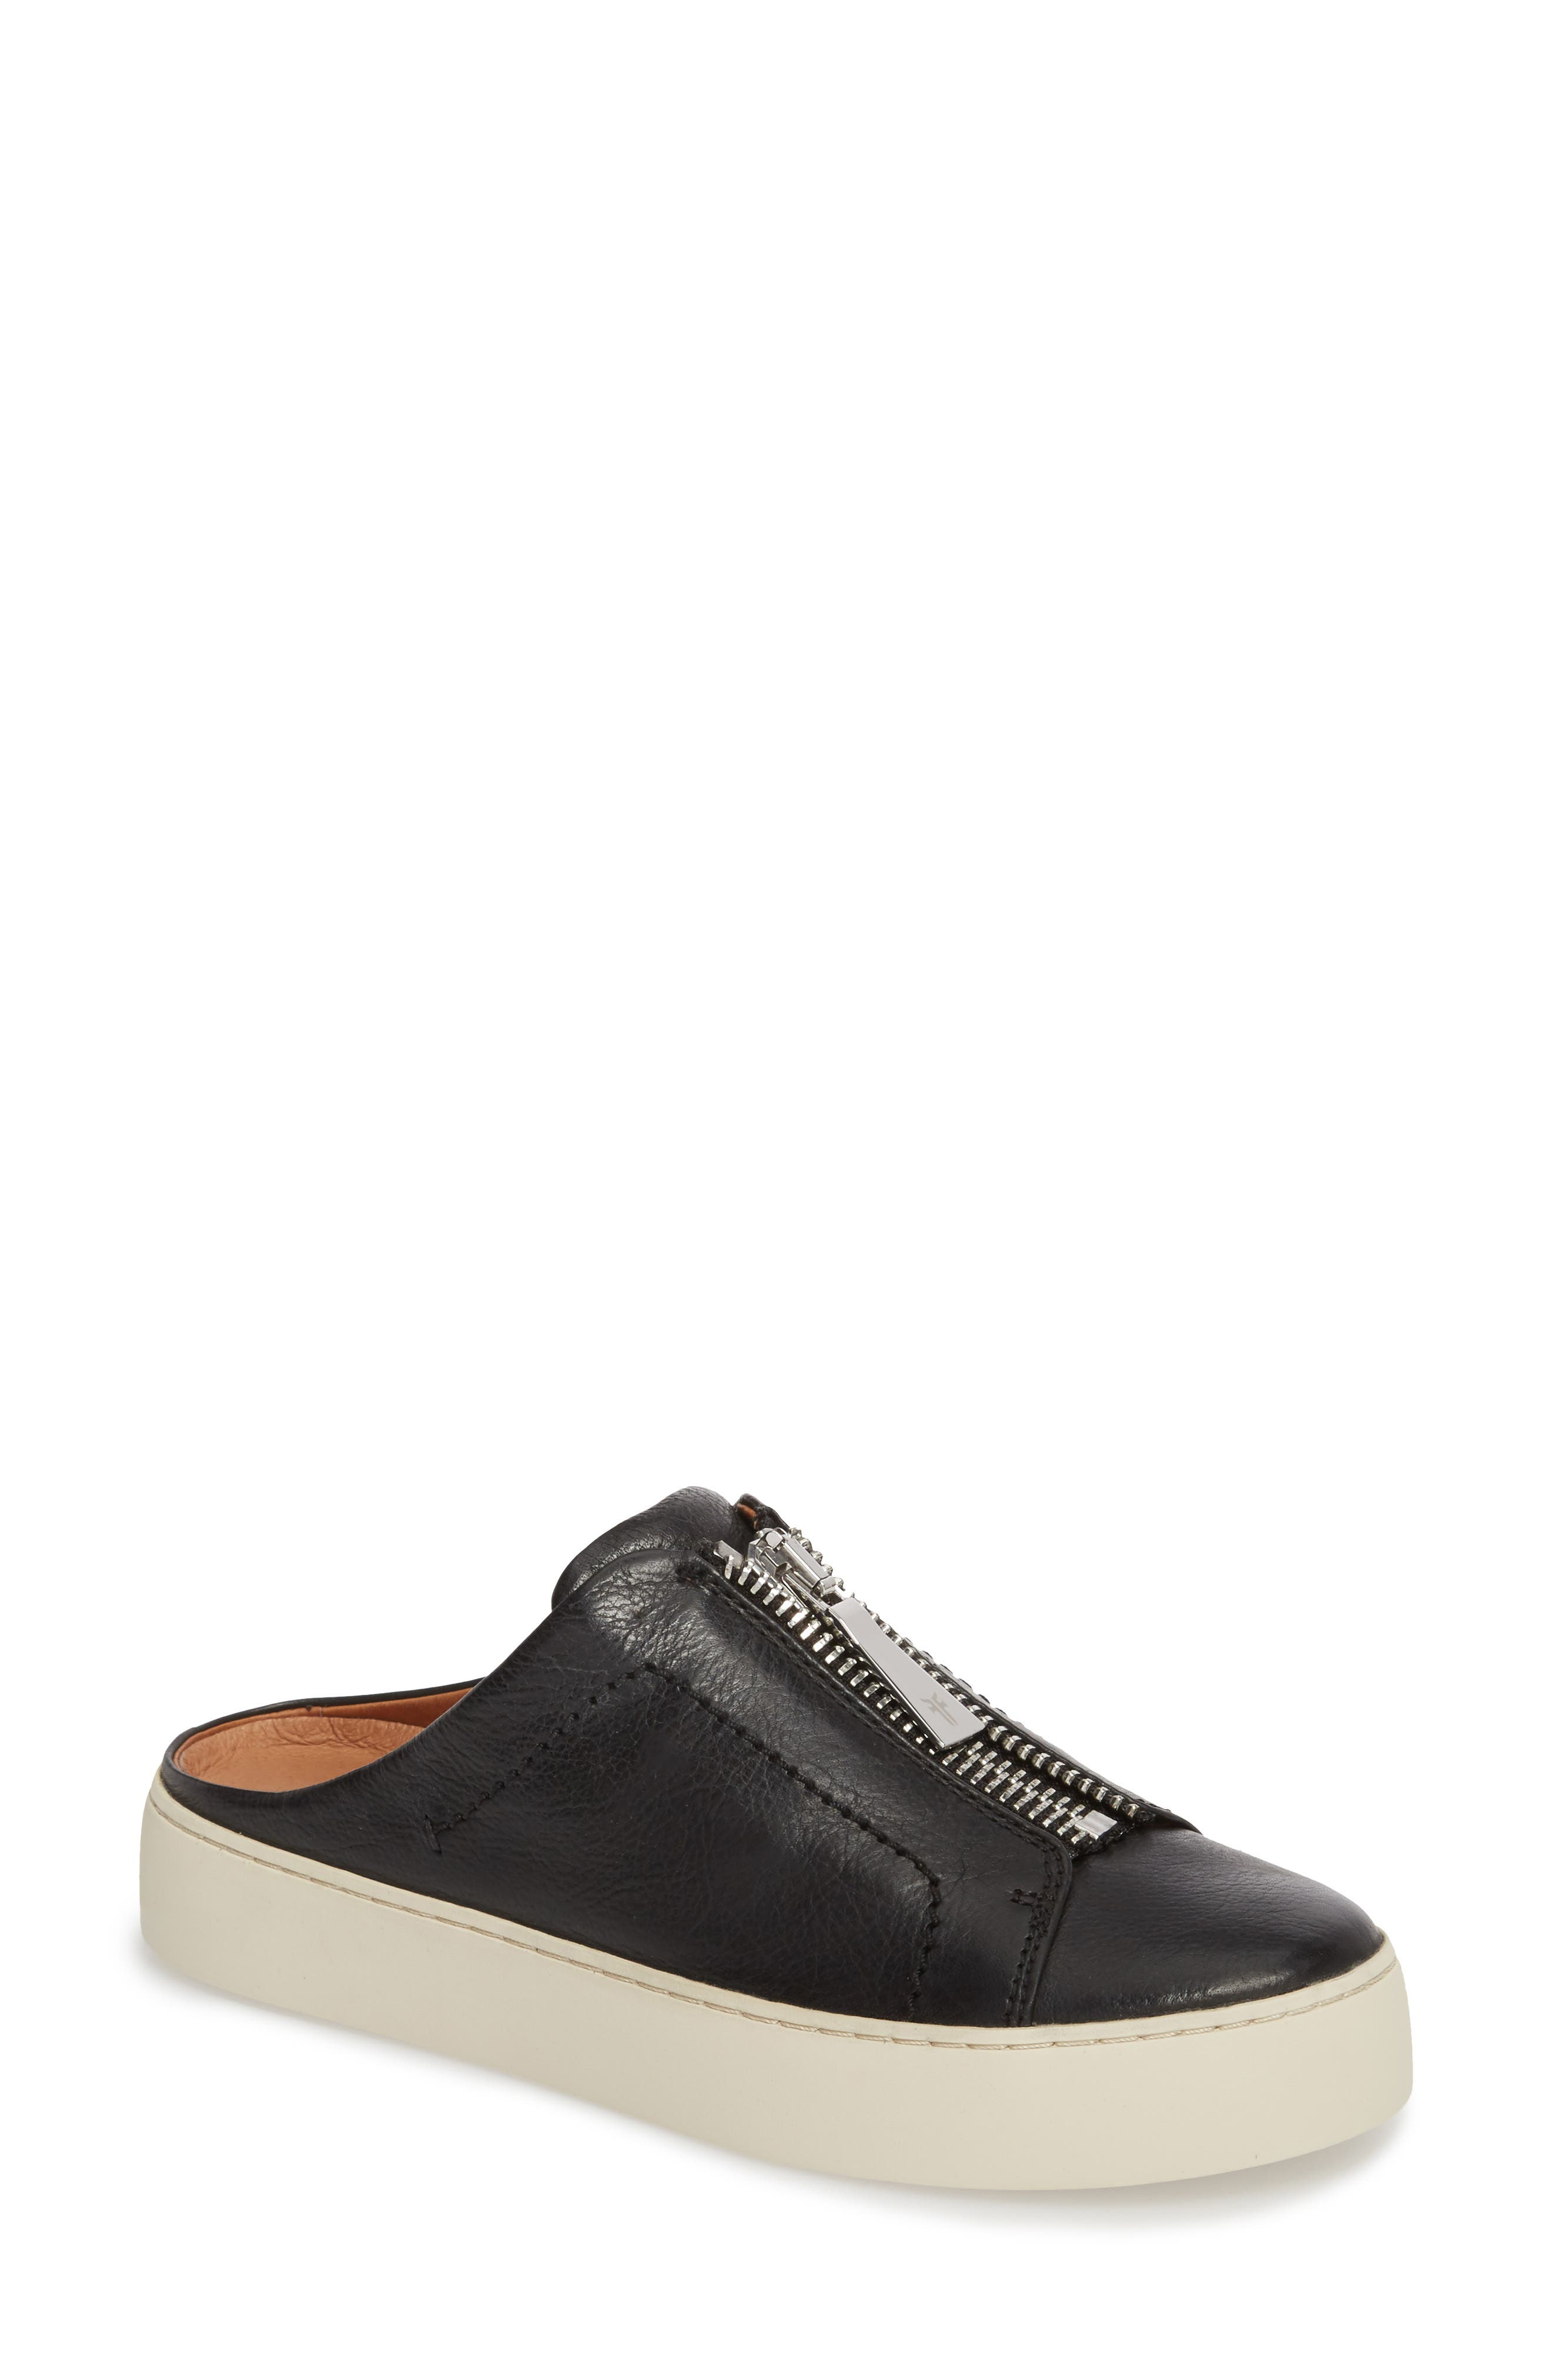 Lena Platform Sneaker Mule,                         Main,                         color, Black Leather